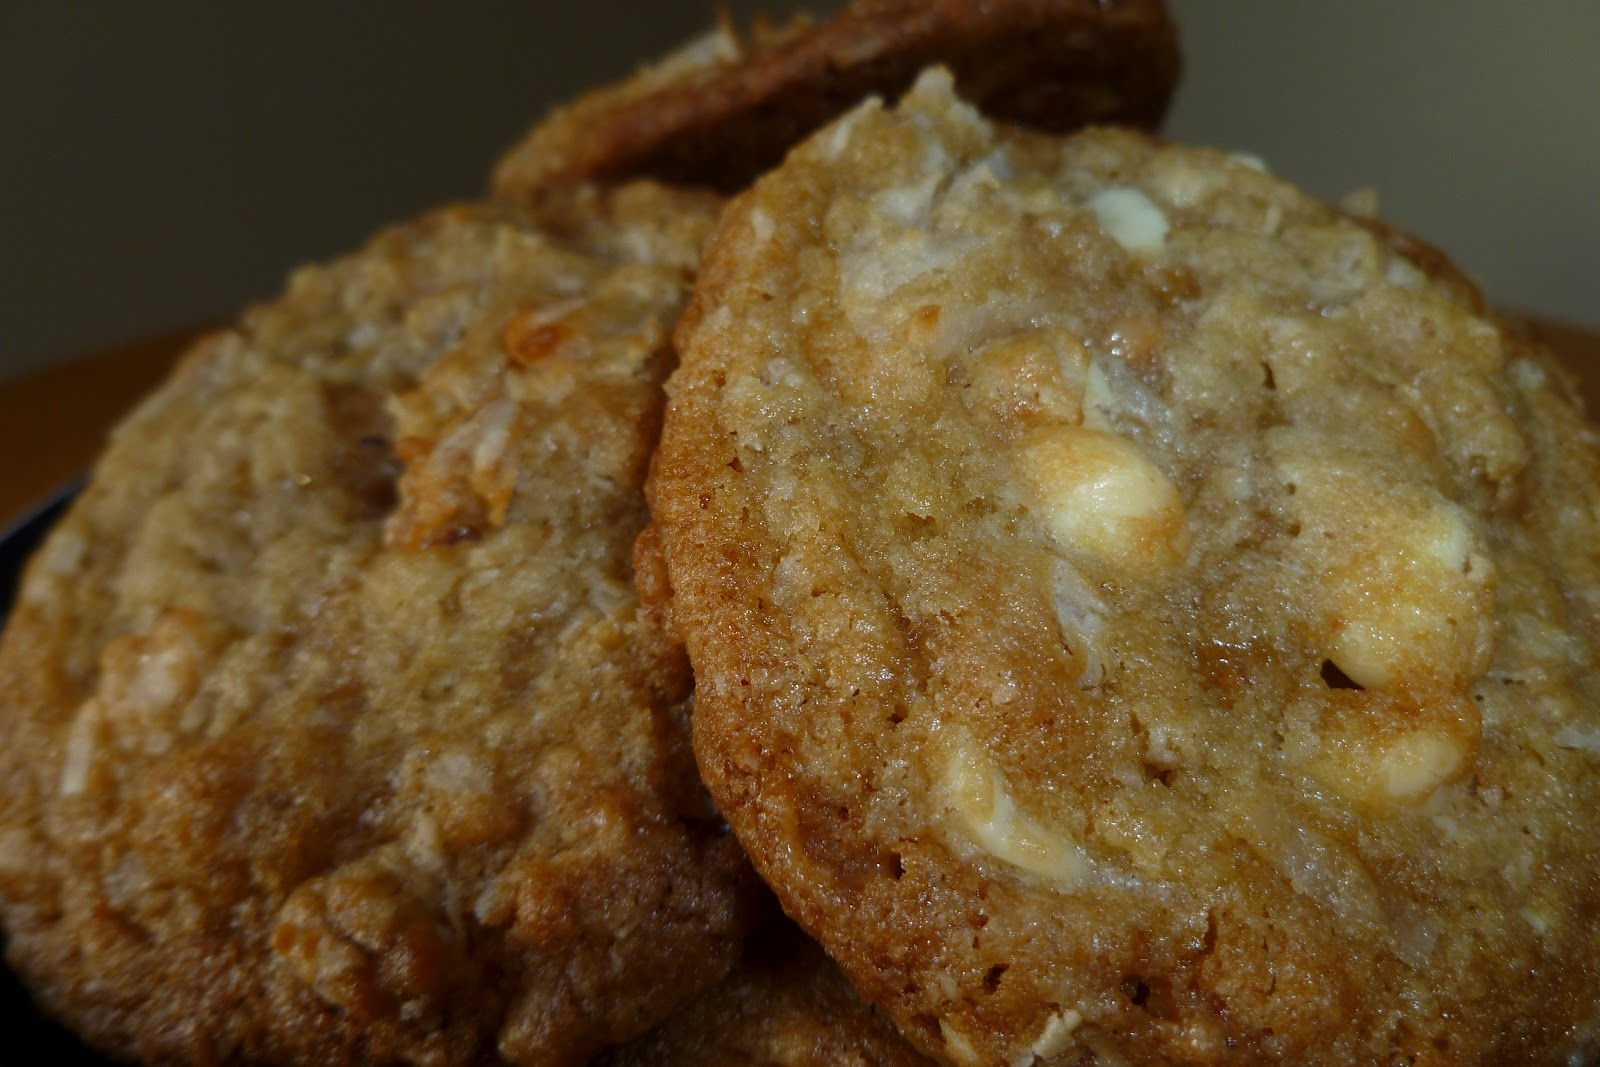 The Pastry Chef's Baking: Toffee and White Chocolate Chunk Cookies